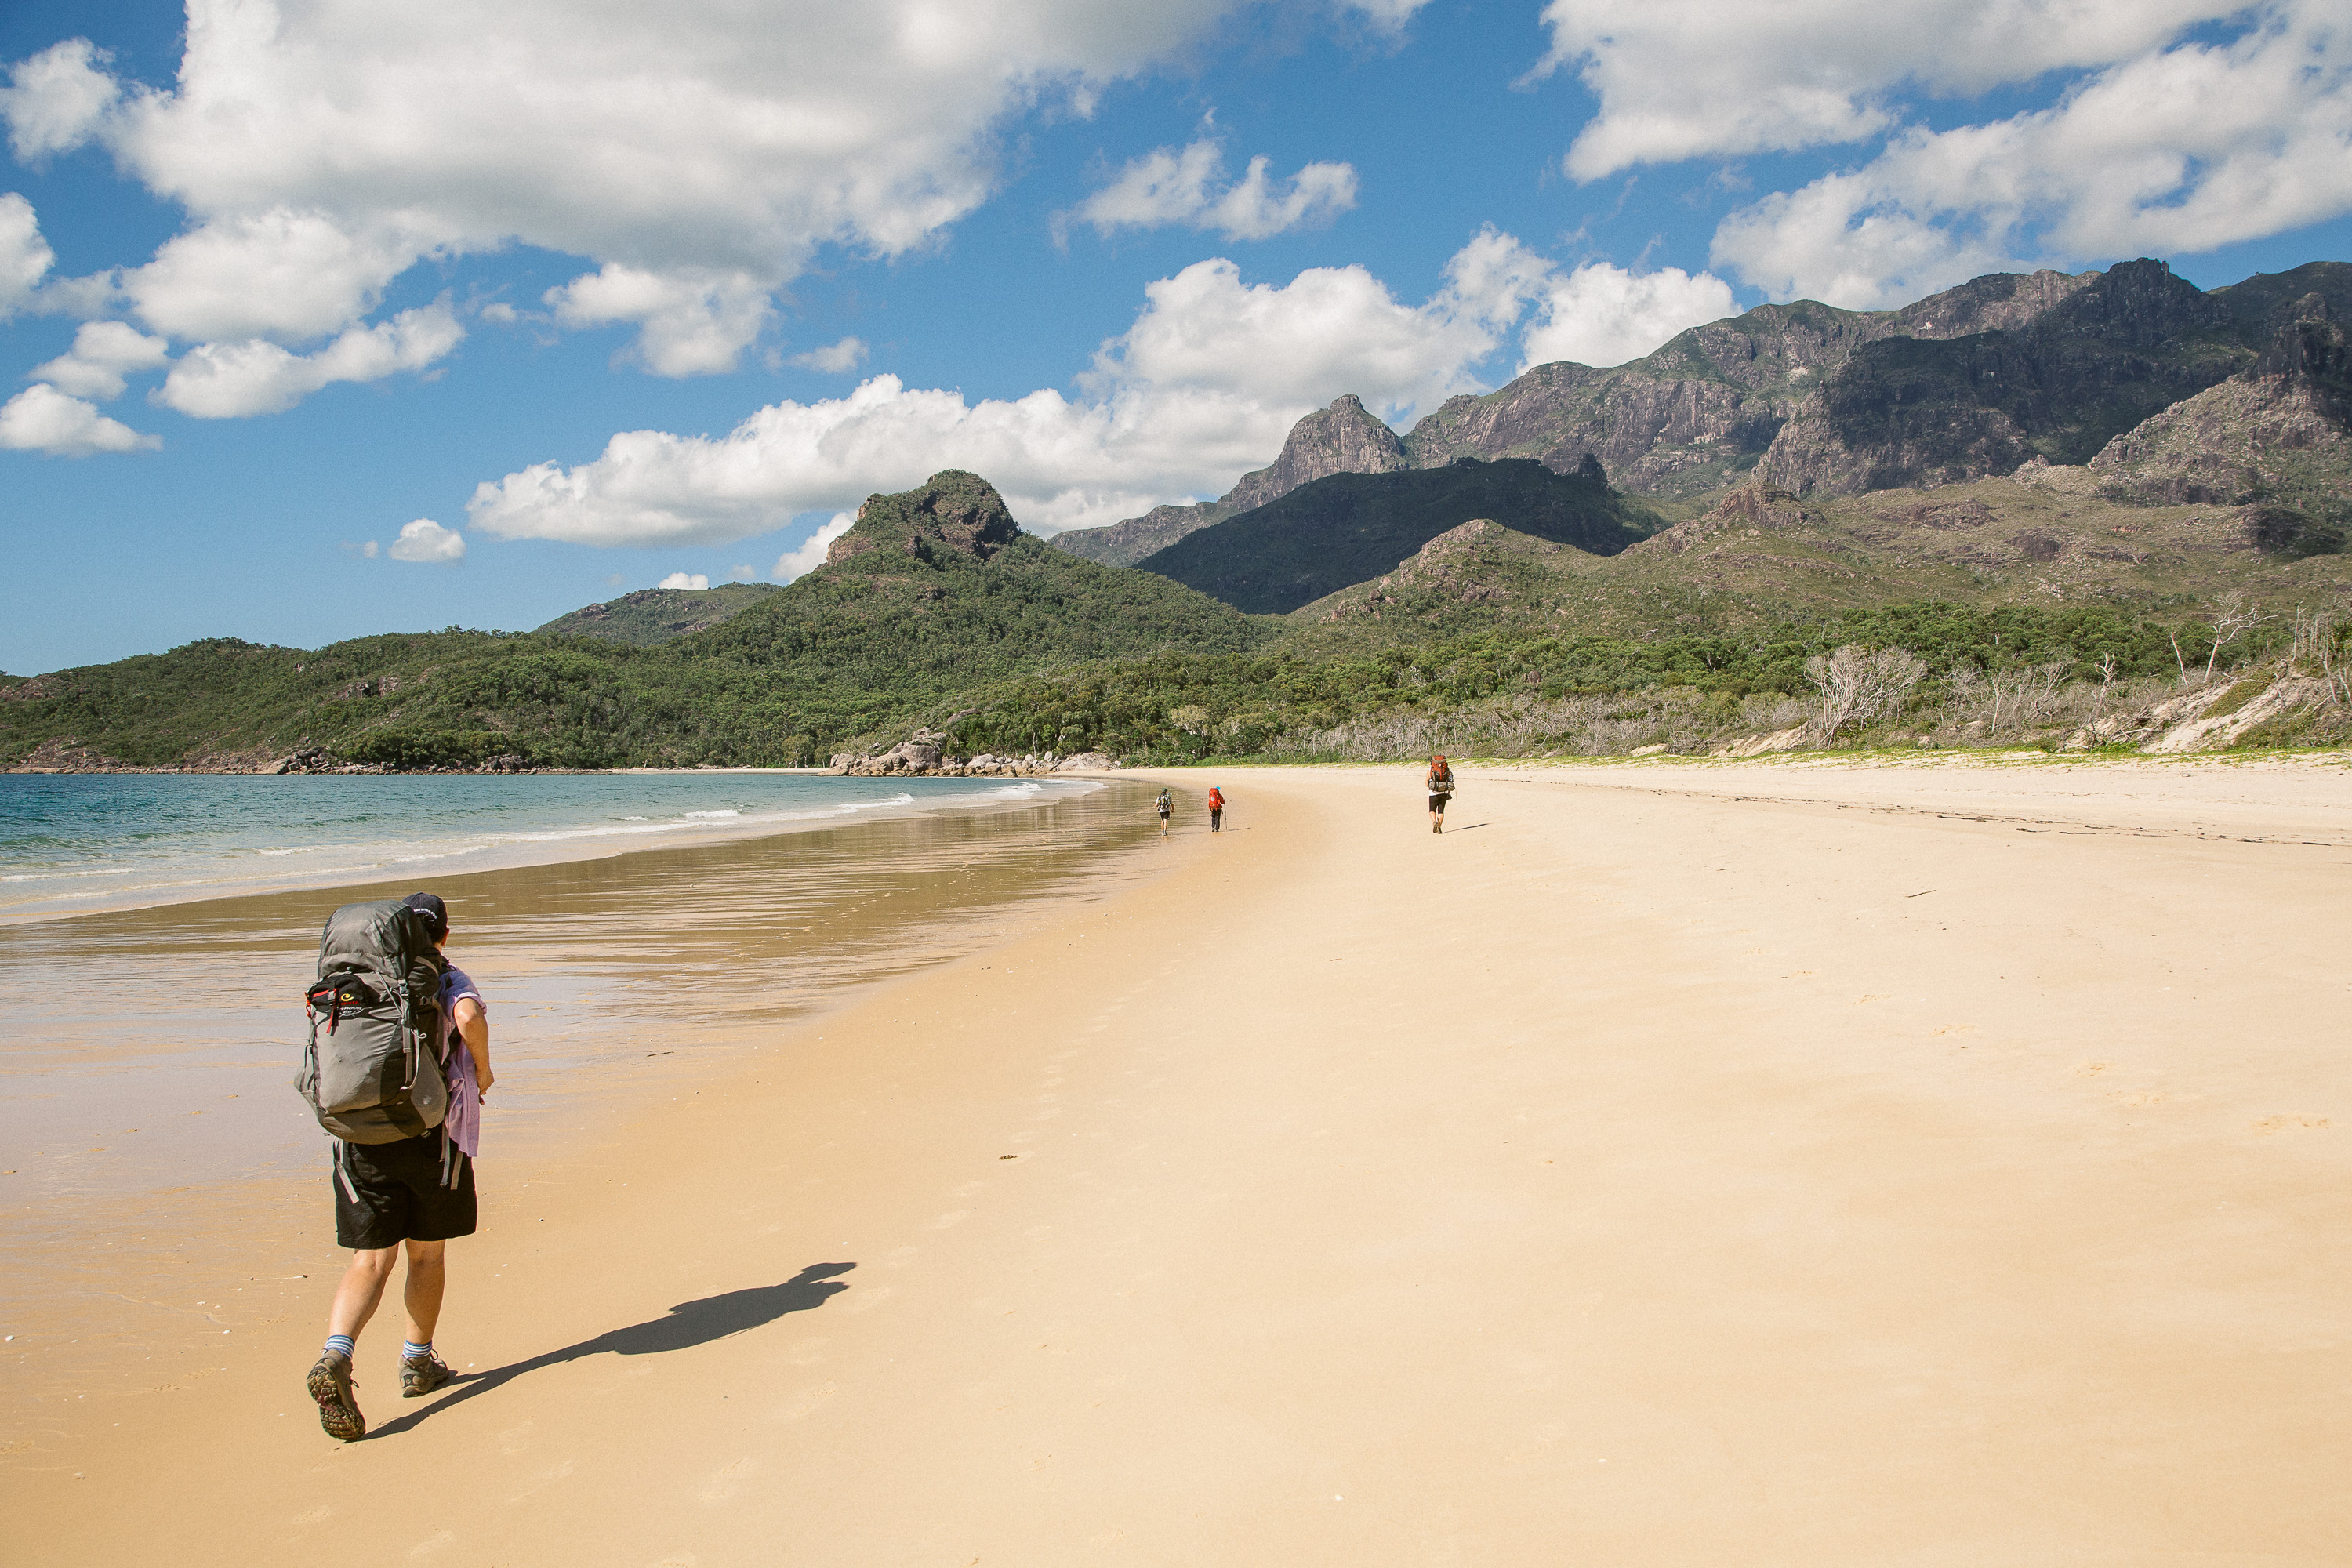 Walkers commence a 4 day hike on the Thorsborne Trail by crossing the beach at Ramsay Bay. The Thorsborne Trail is a 40km hiking path that visits several of Hinchinbrook Island's beaches and waterfalls. Situated off the coast of North Queensland, Australia, Hinchinbrook Island is a mountainous National Park characterised by rainforest and golden beaches. Walkers typically take 4 days to complete the hike, and to protect the ecosystem of the island only 40 visitors are allowed onto the trail at any one time.